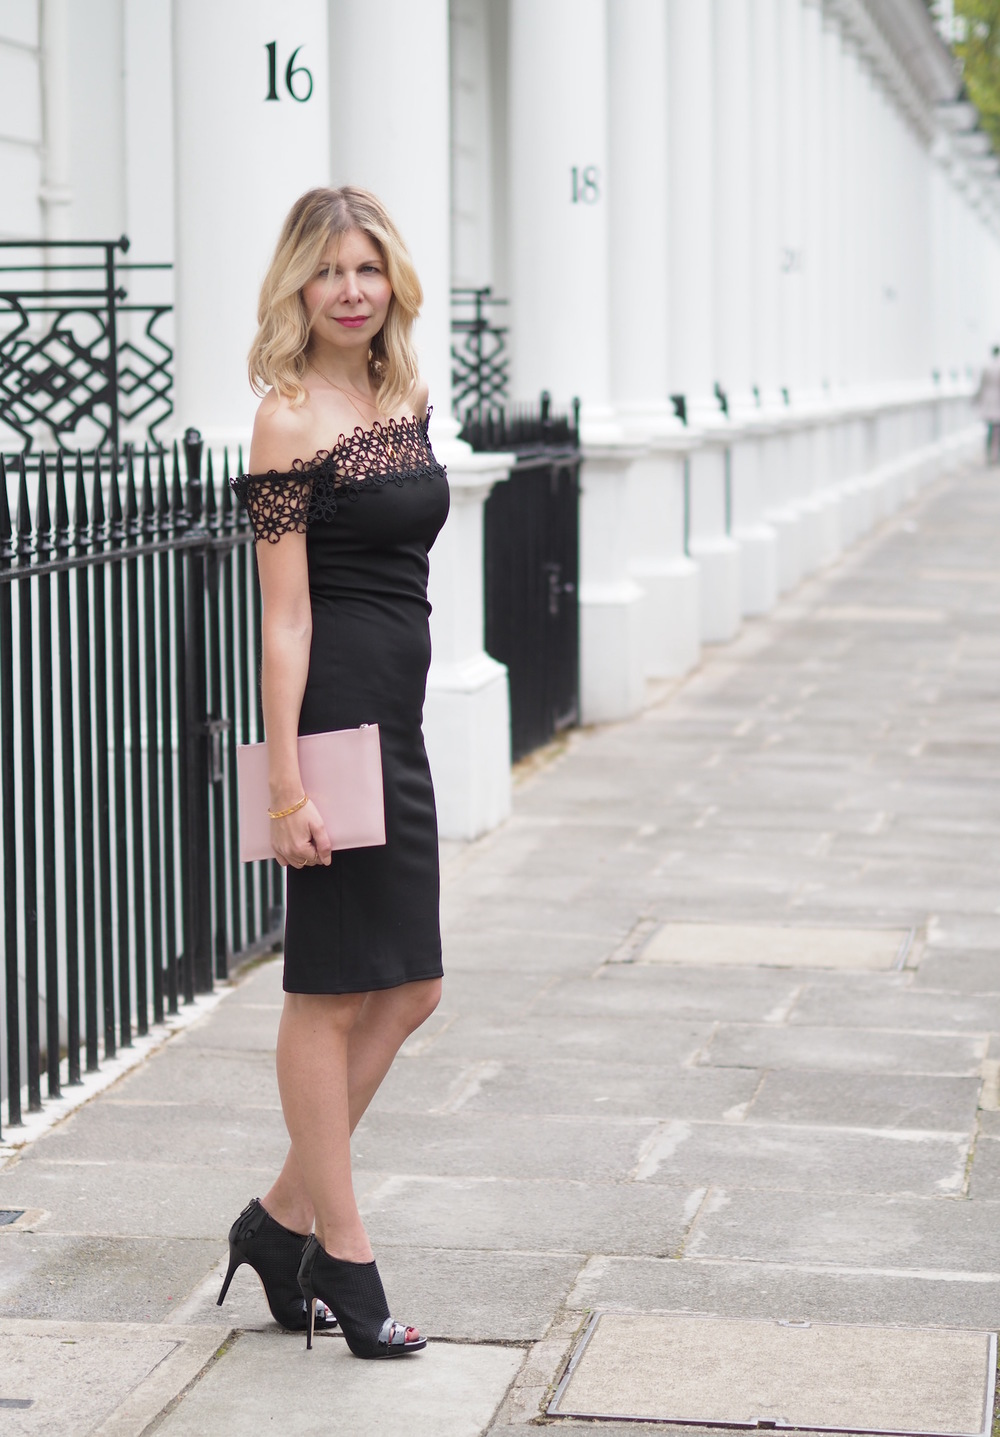 The Ultimate Classic: The Little Black Dress - Arianna Trapani wearing LUX FIX